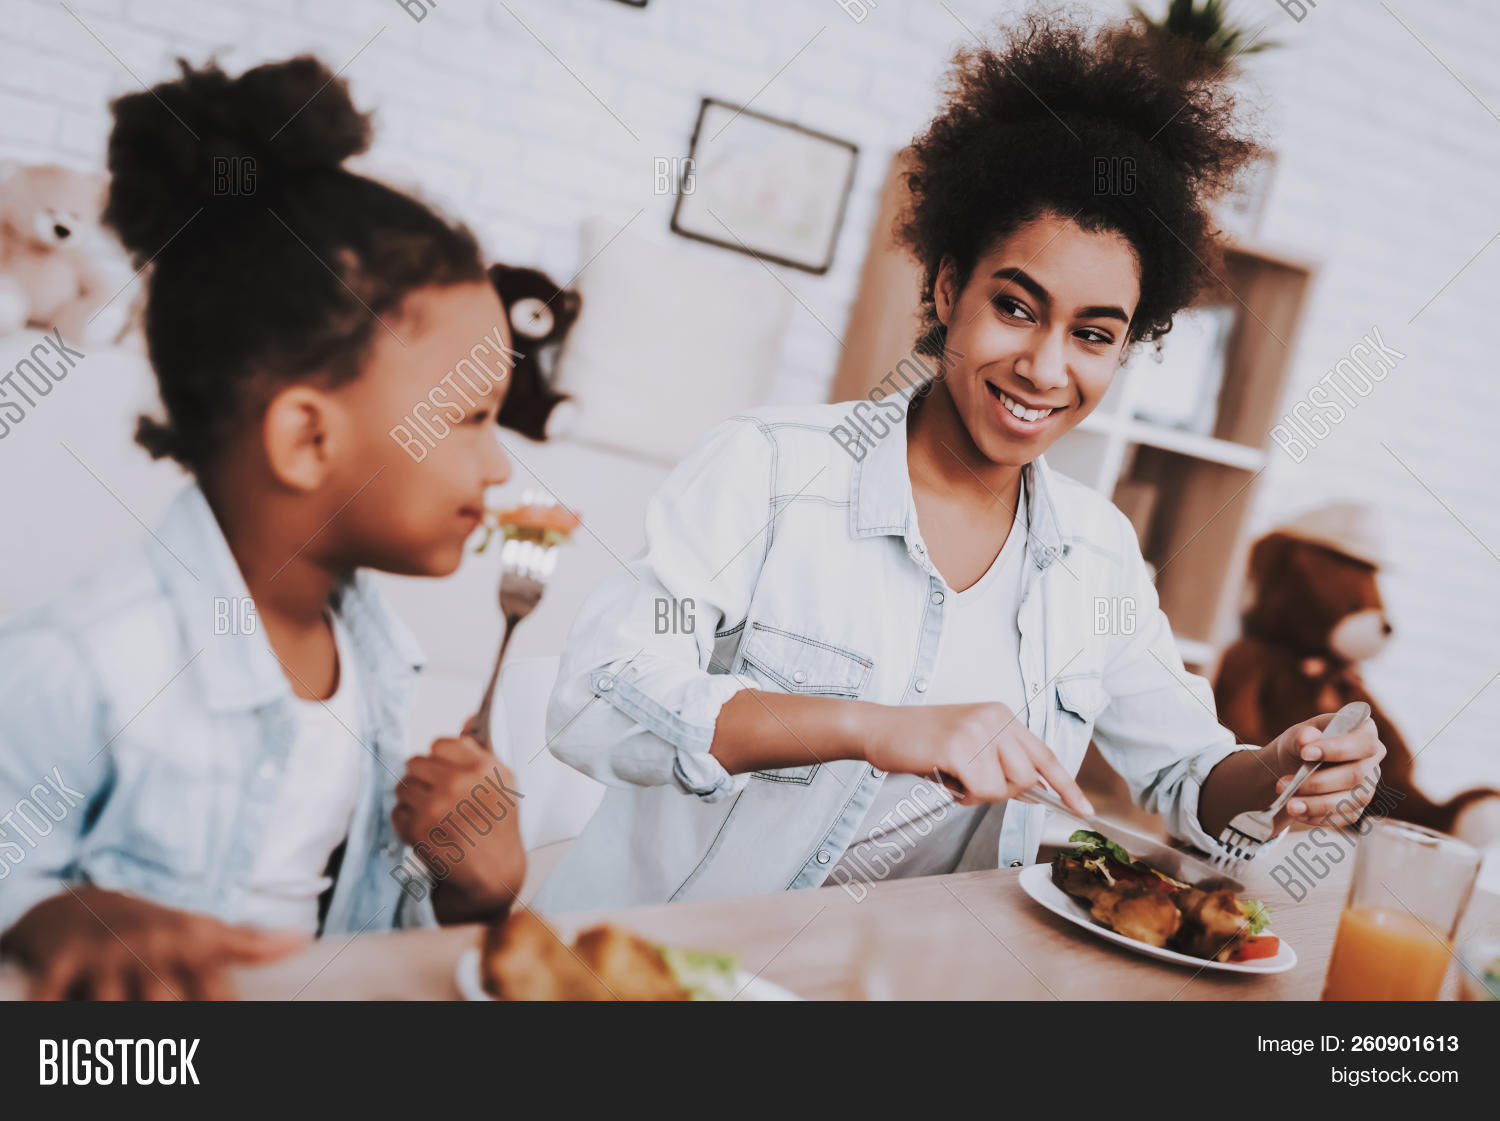 Girls Breakfast Image & Photo (Free Trial) | Bigstock